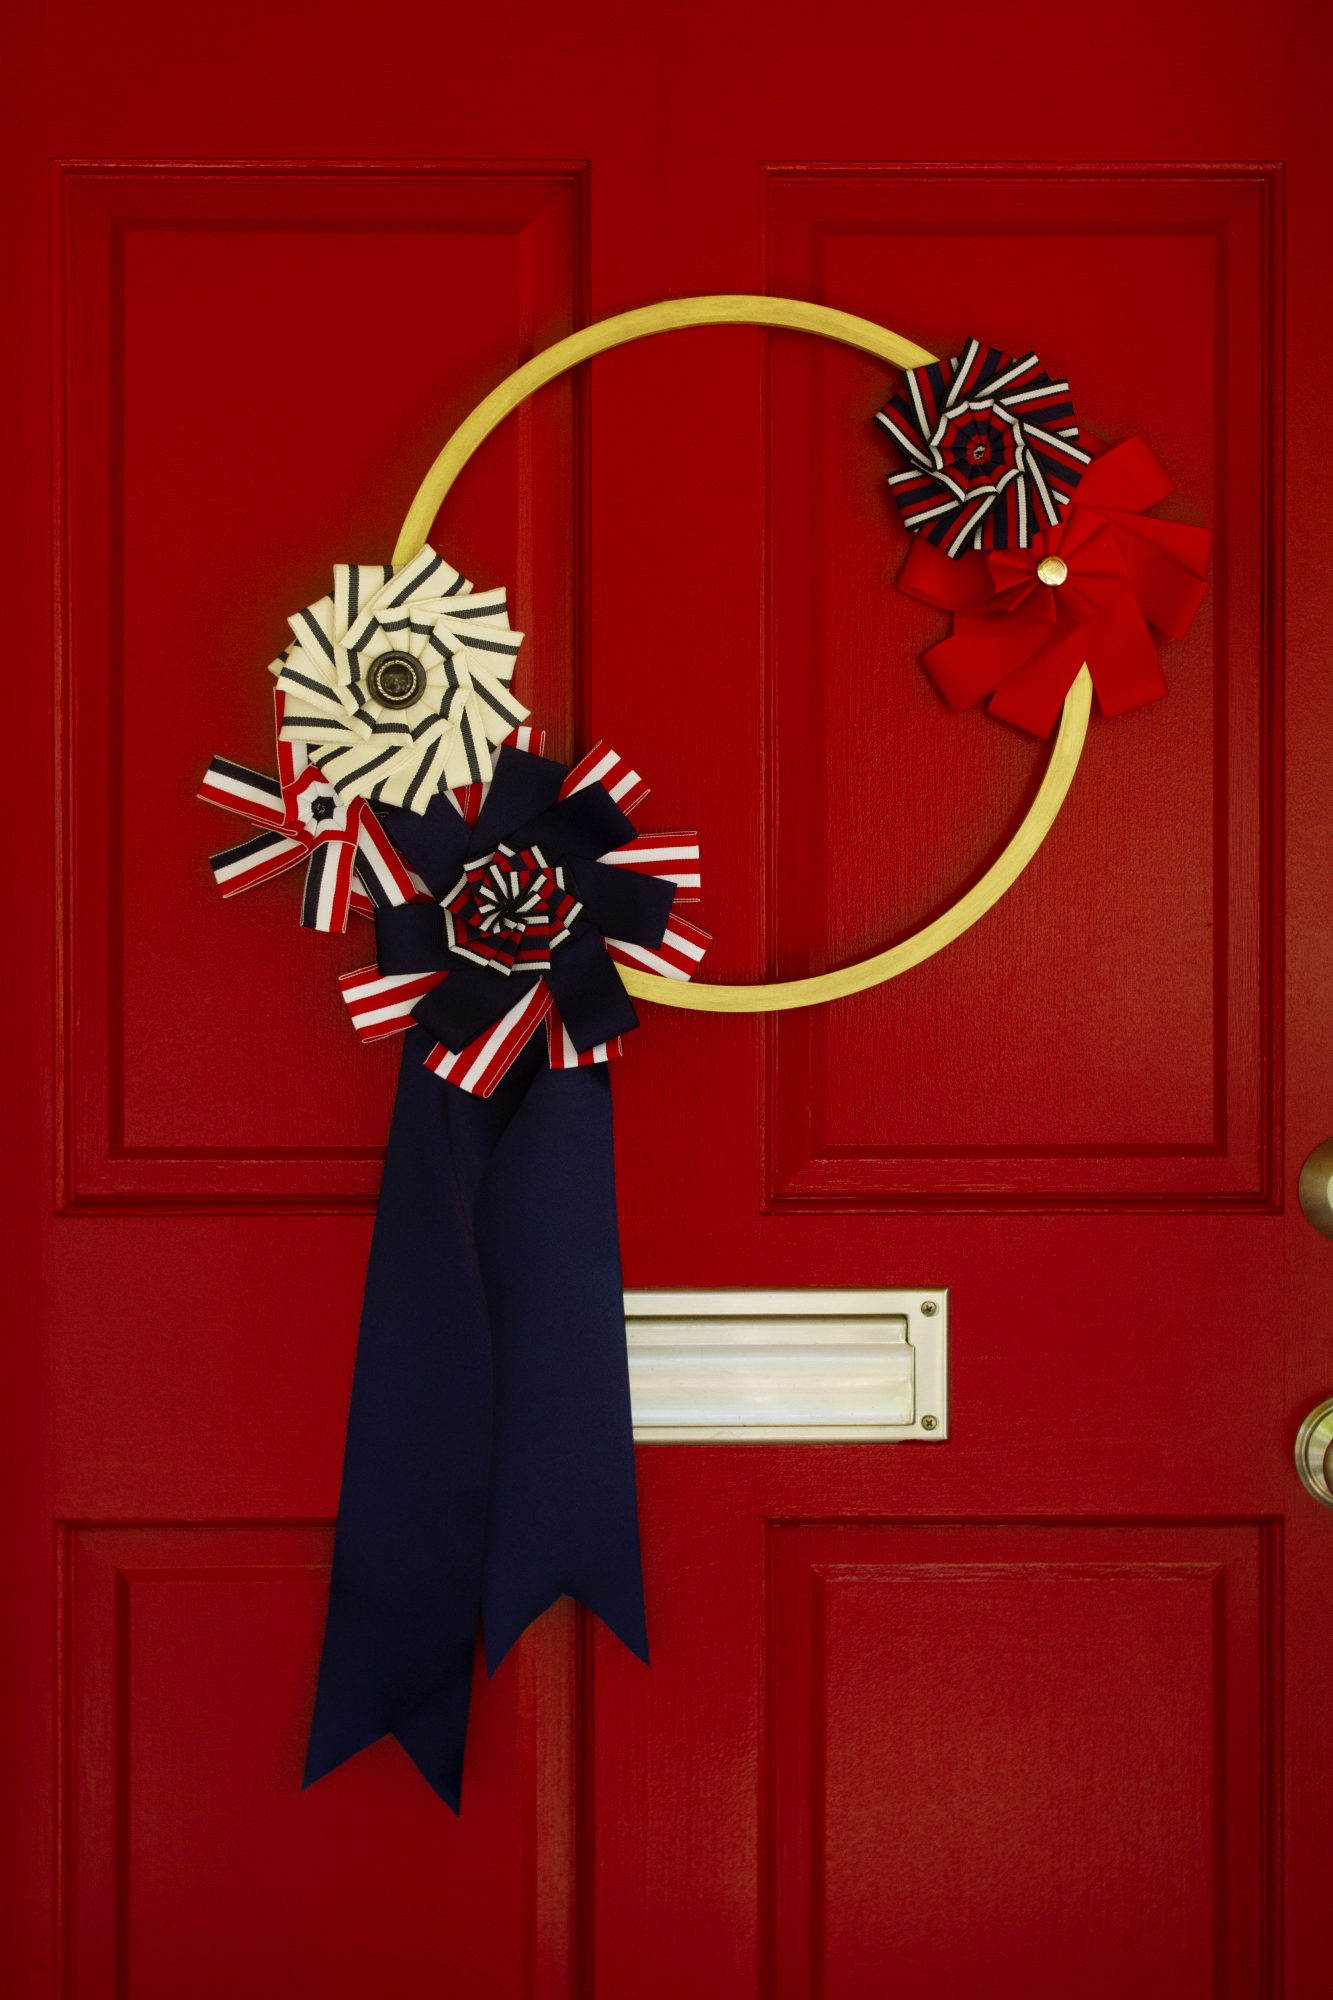 patriotic fourth of july wreath on red door